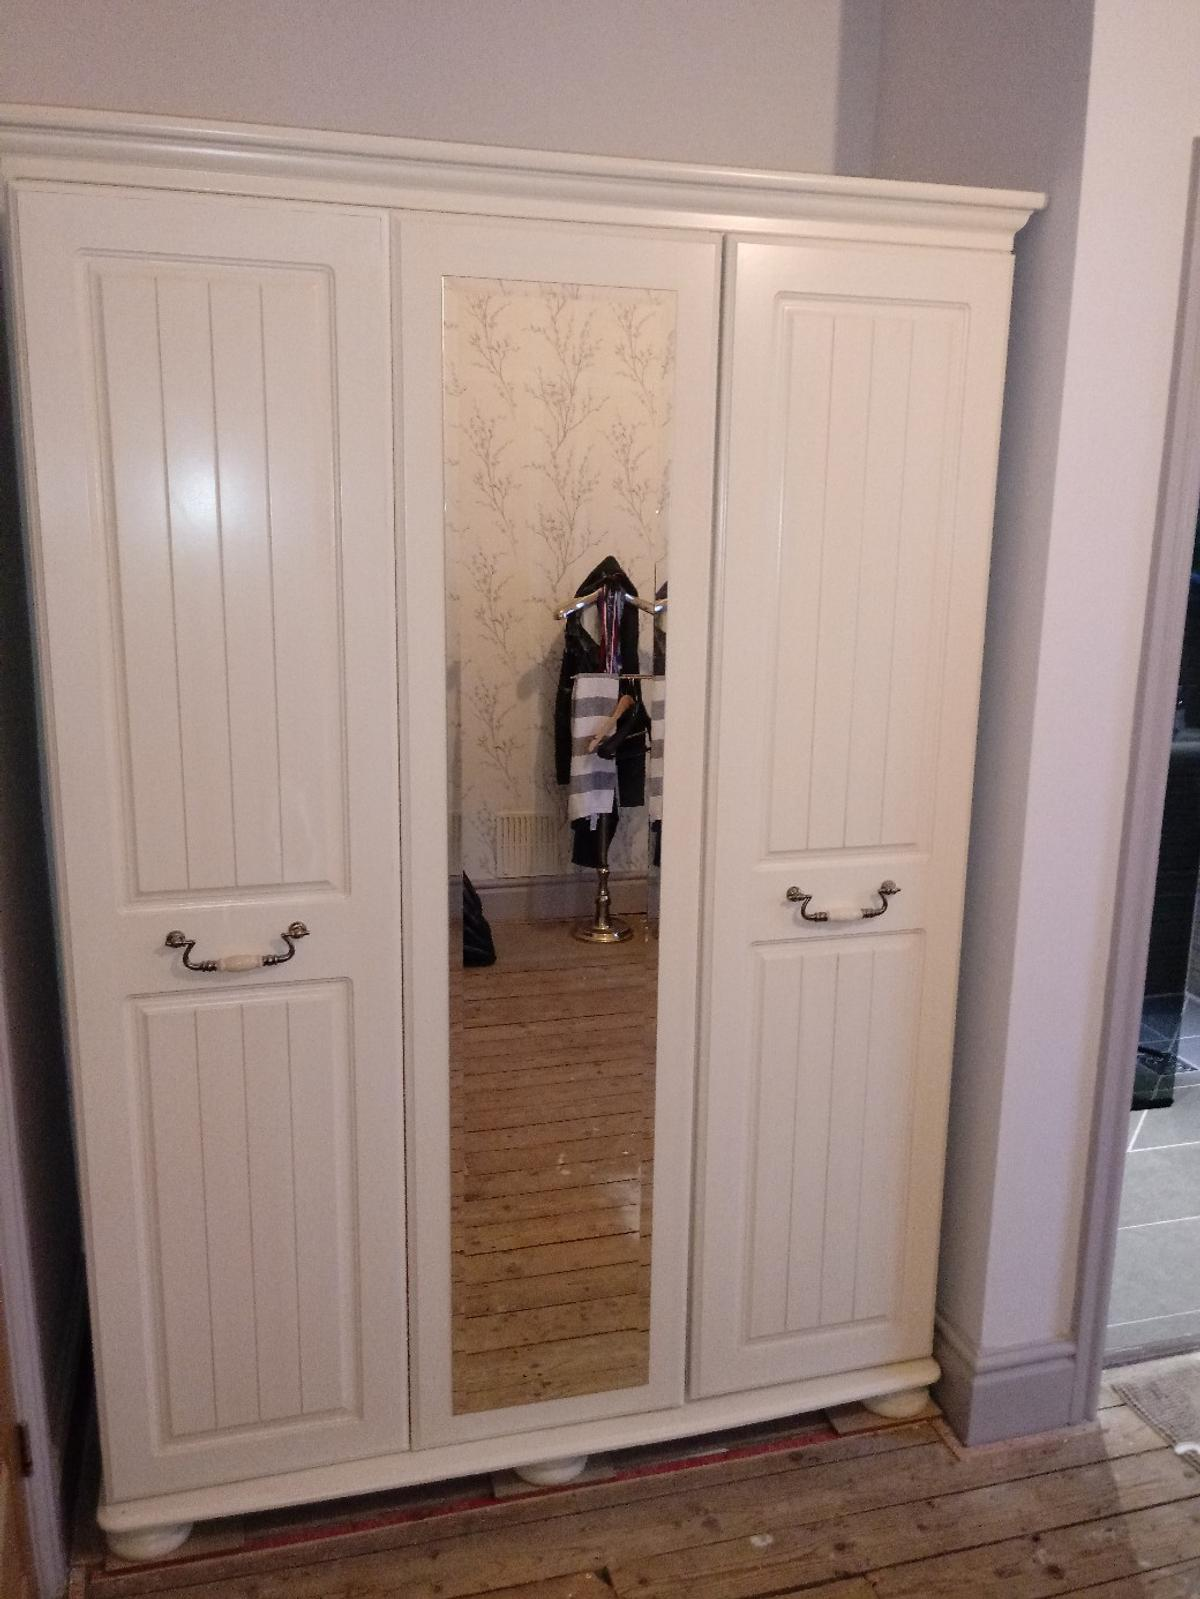 triple wardrobe with mirror in good condition 1400w x1970h x560d. can be taken apart for collection only £125ono